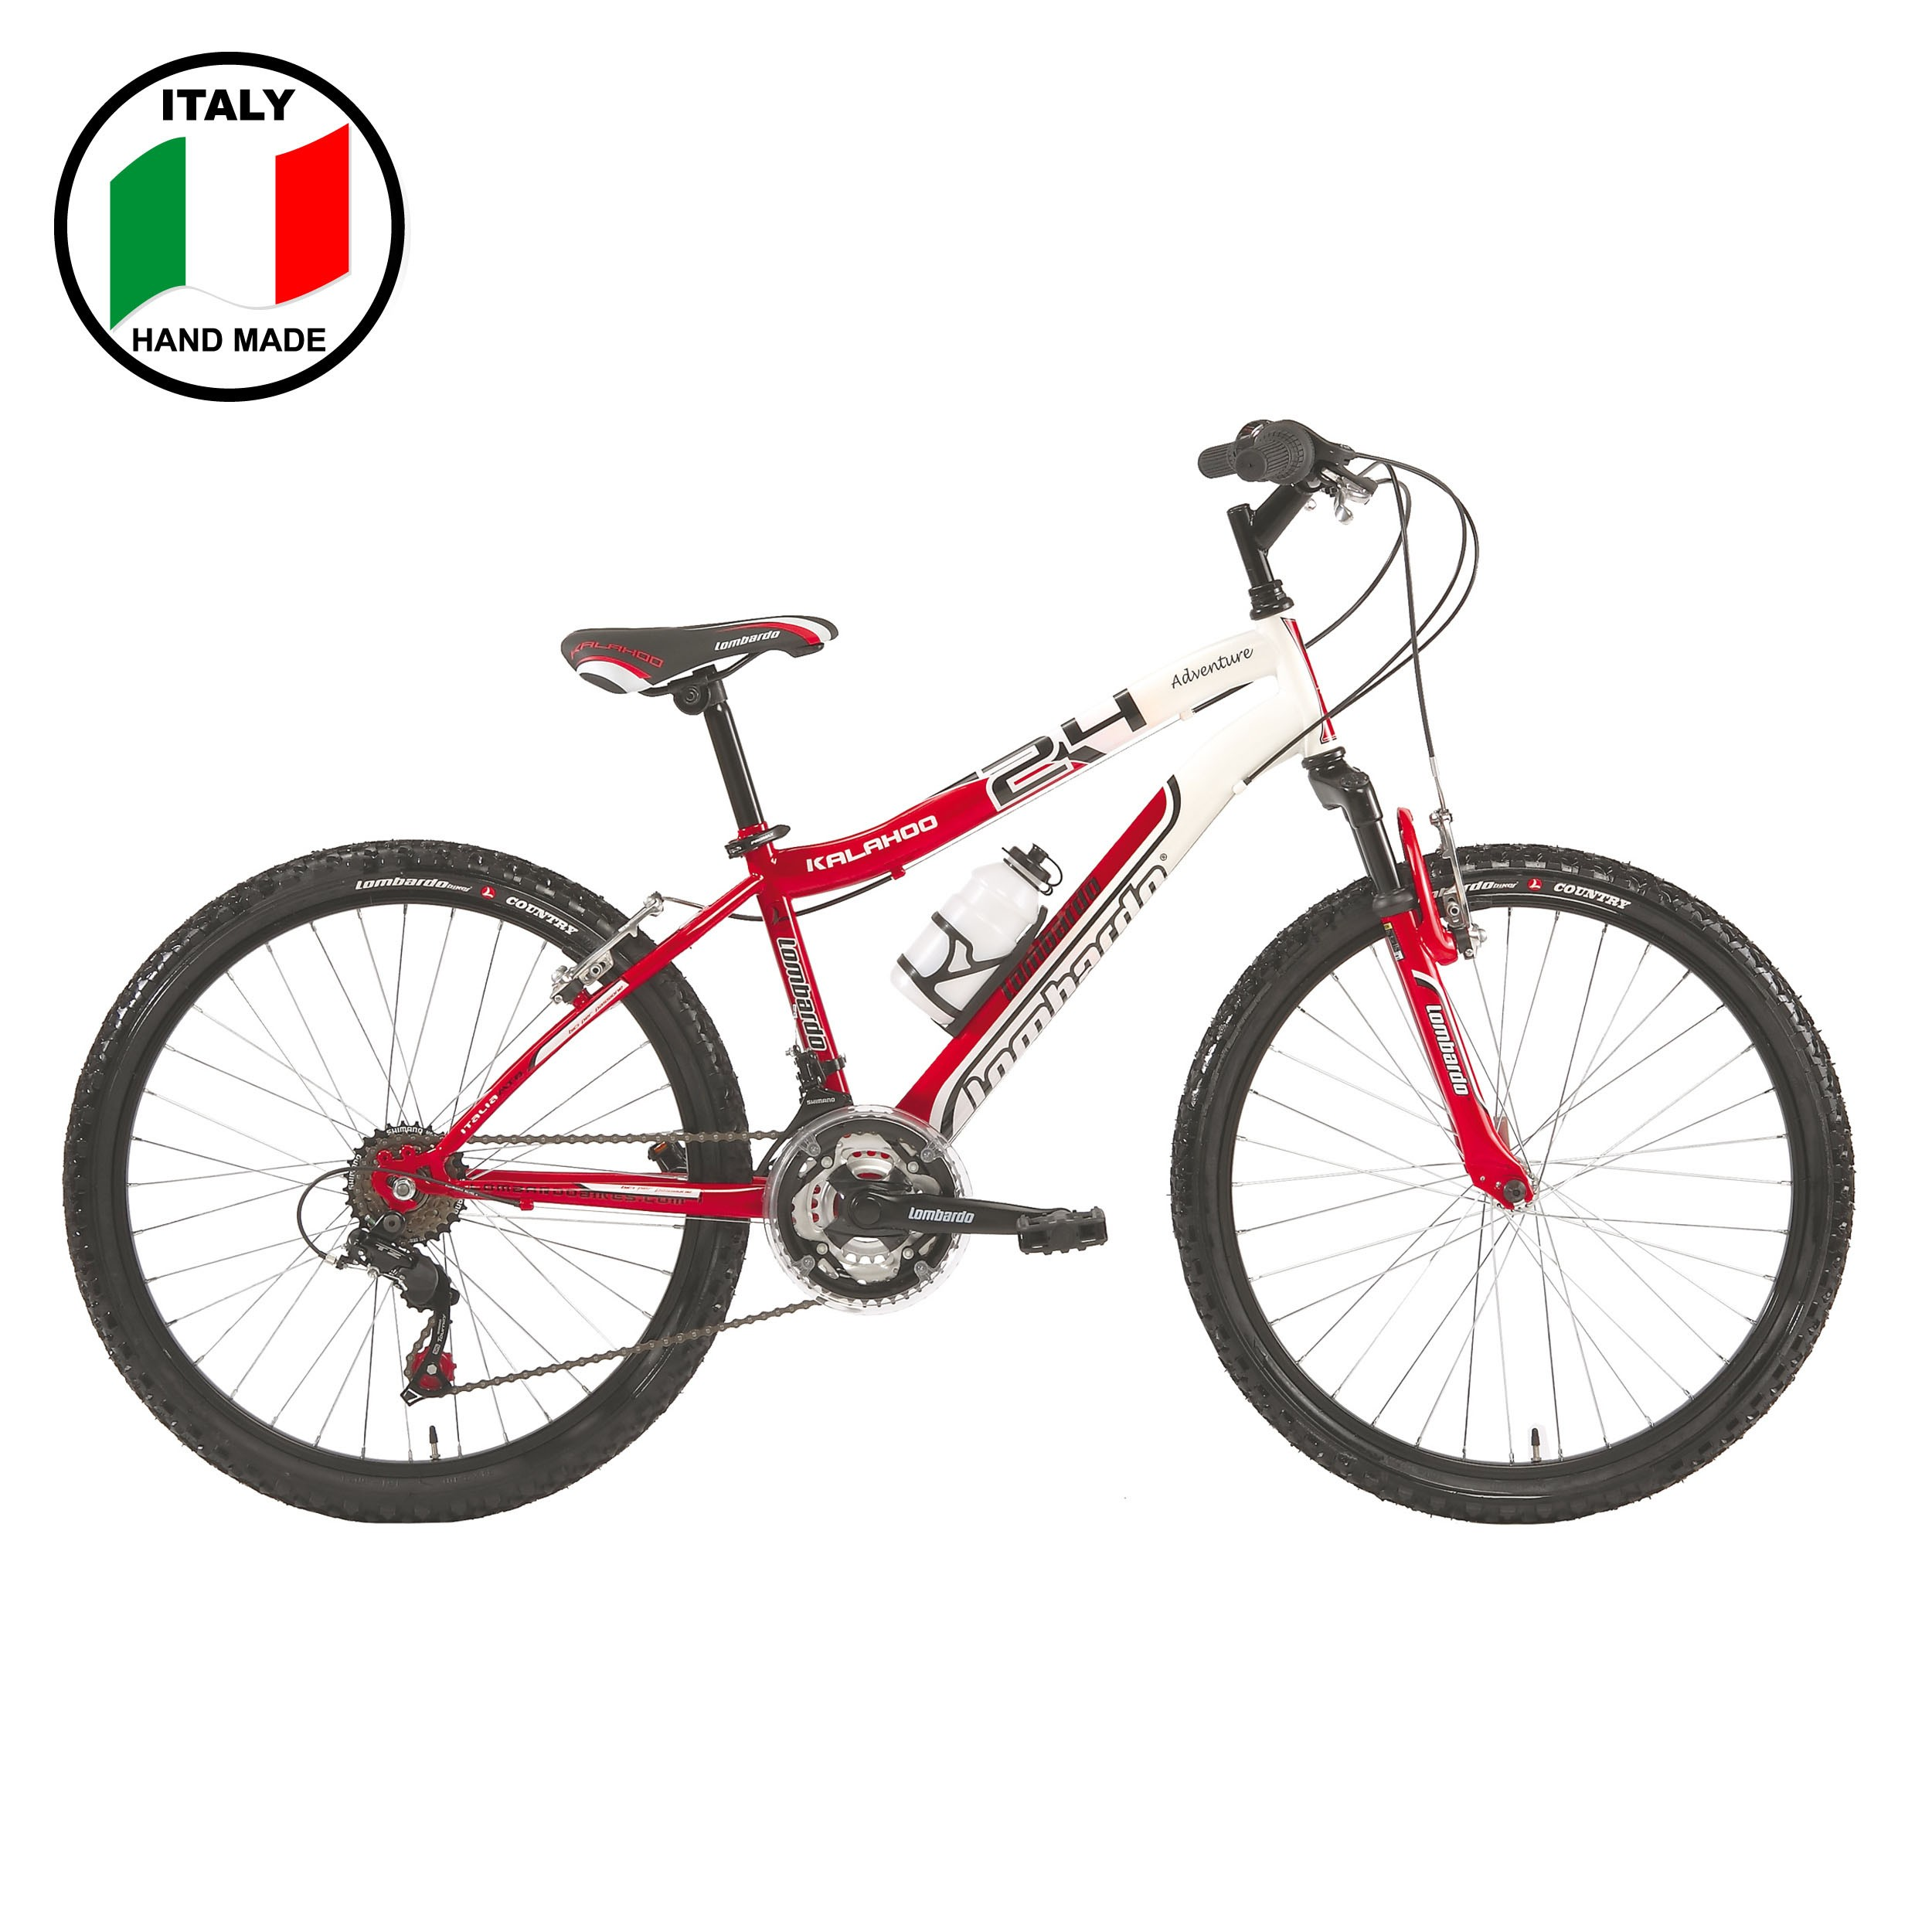 Lombardo Kalahoo  24 inch Men's Bike- Red and White